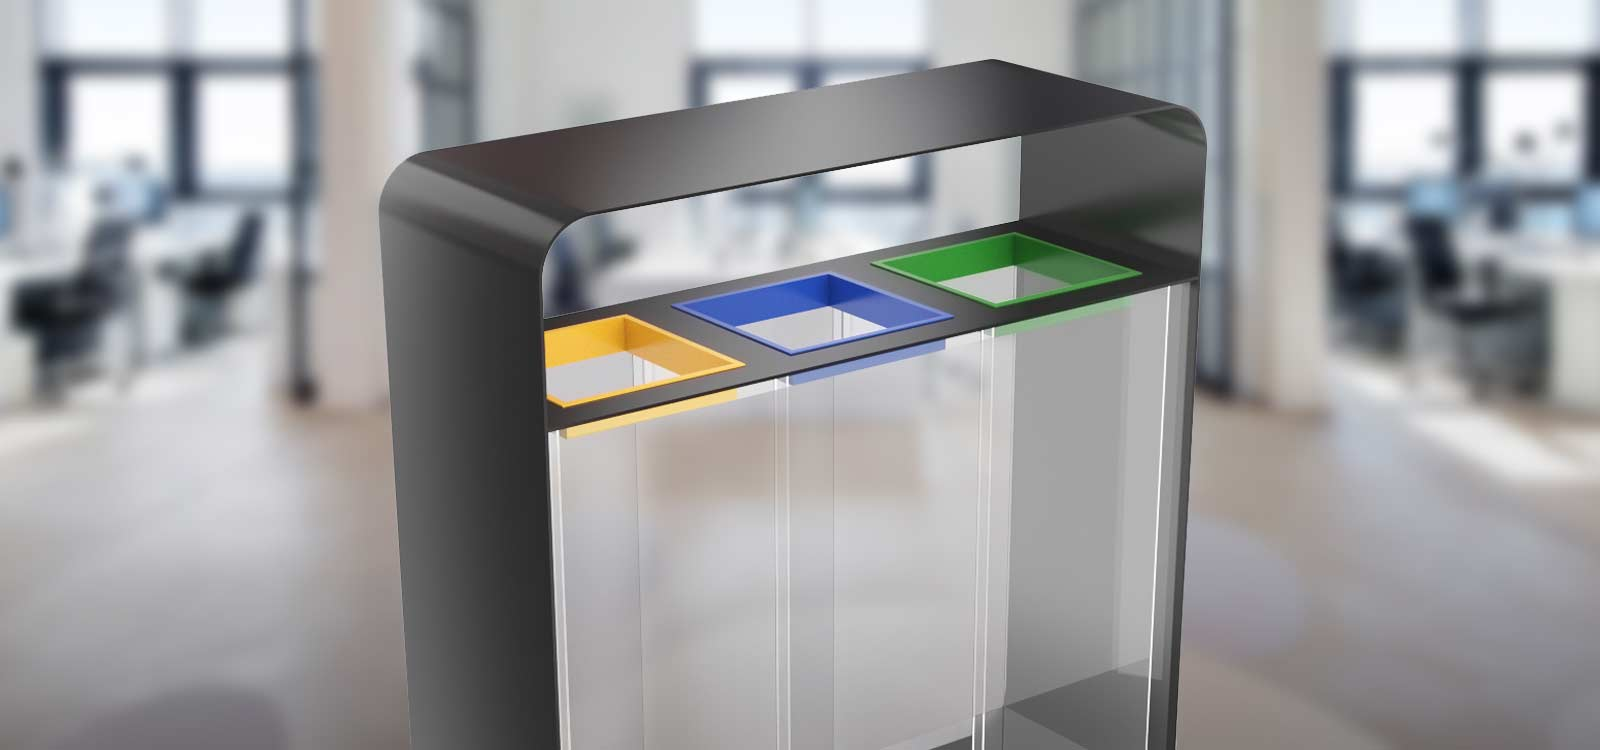 Transparent-recycling-bins-clear-trash-cans